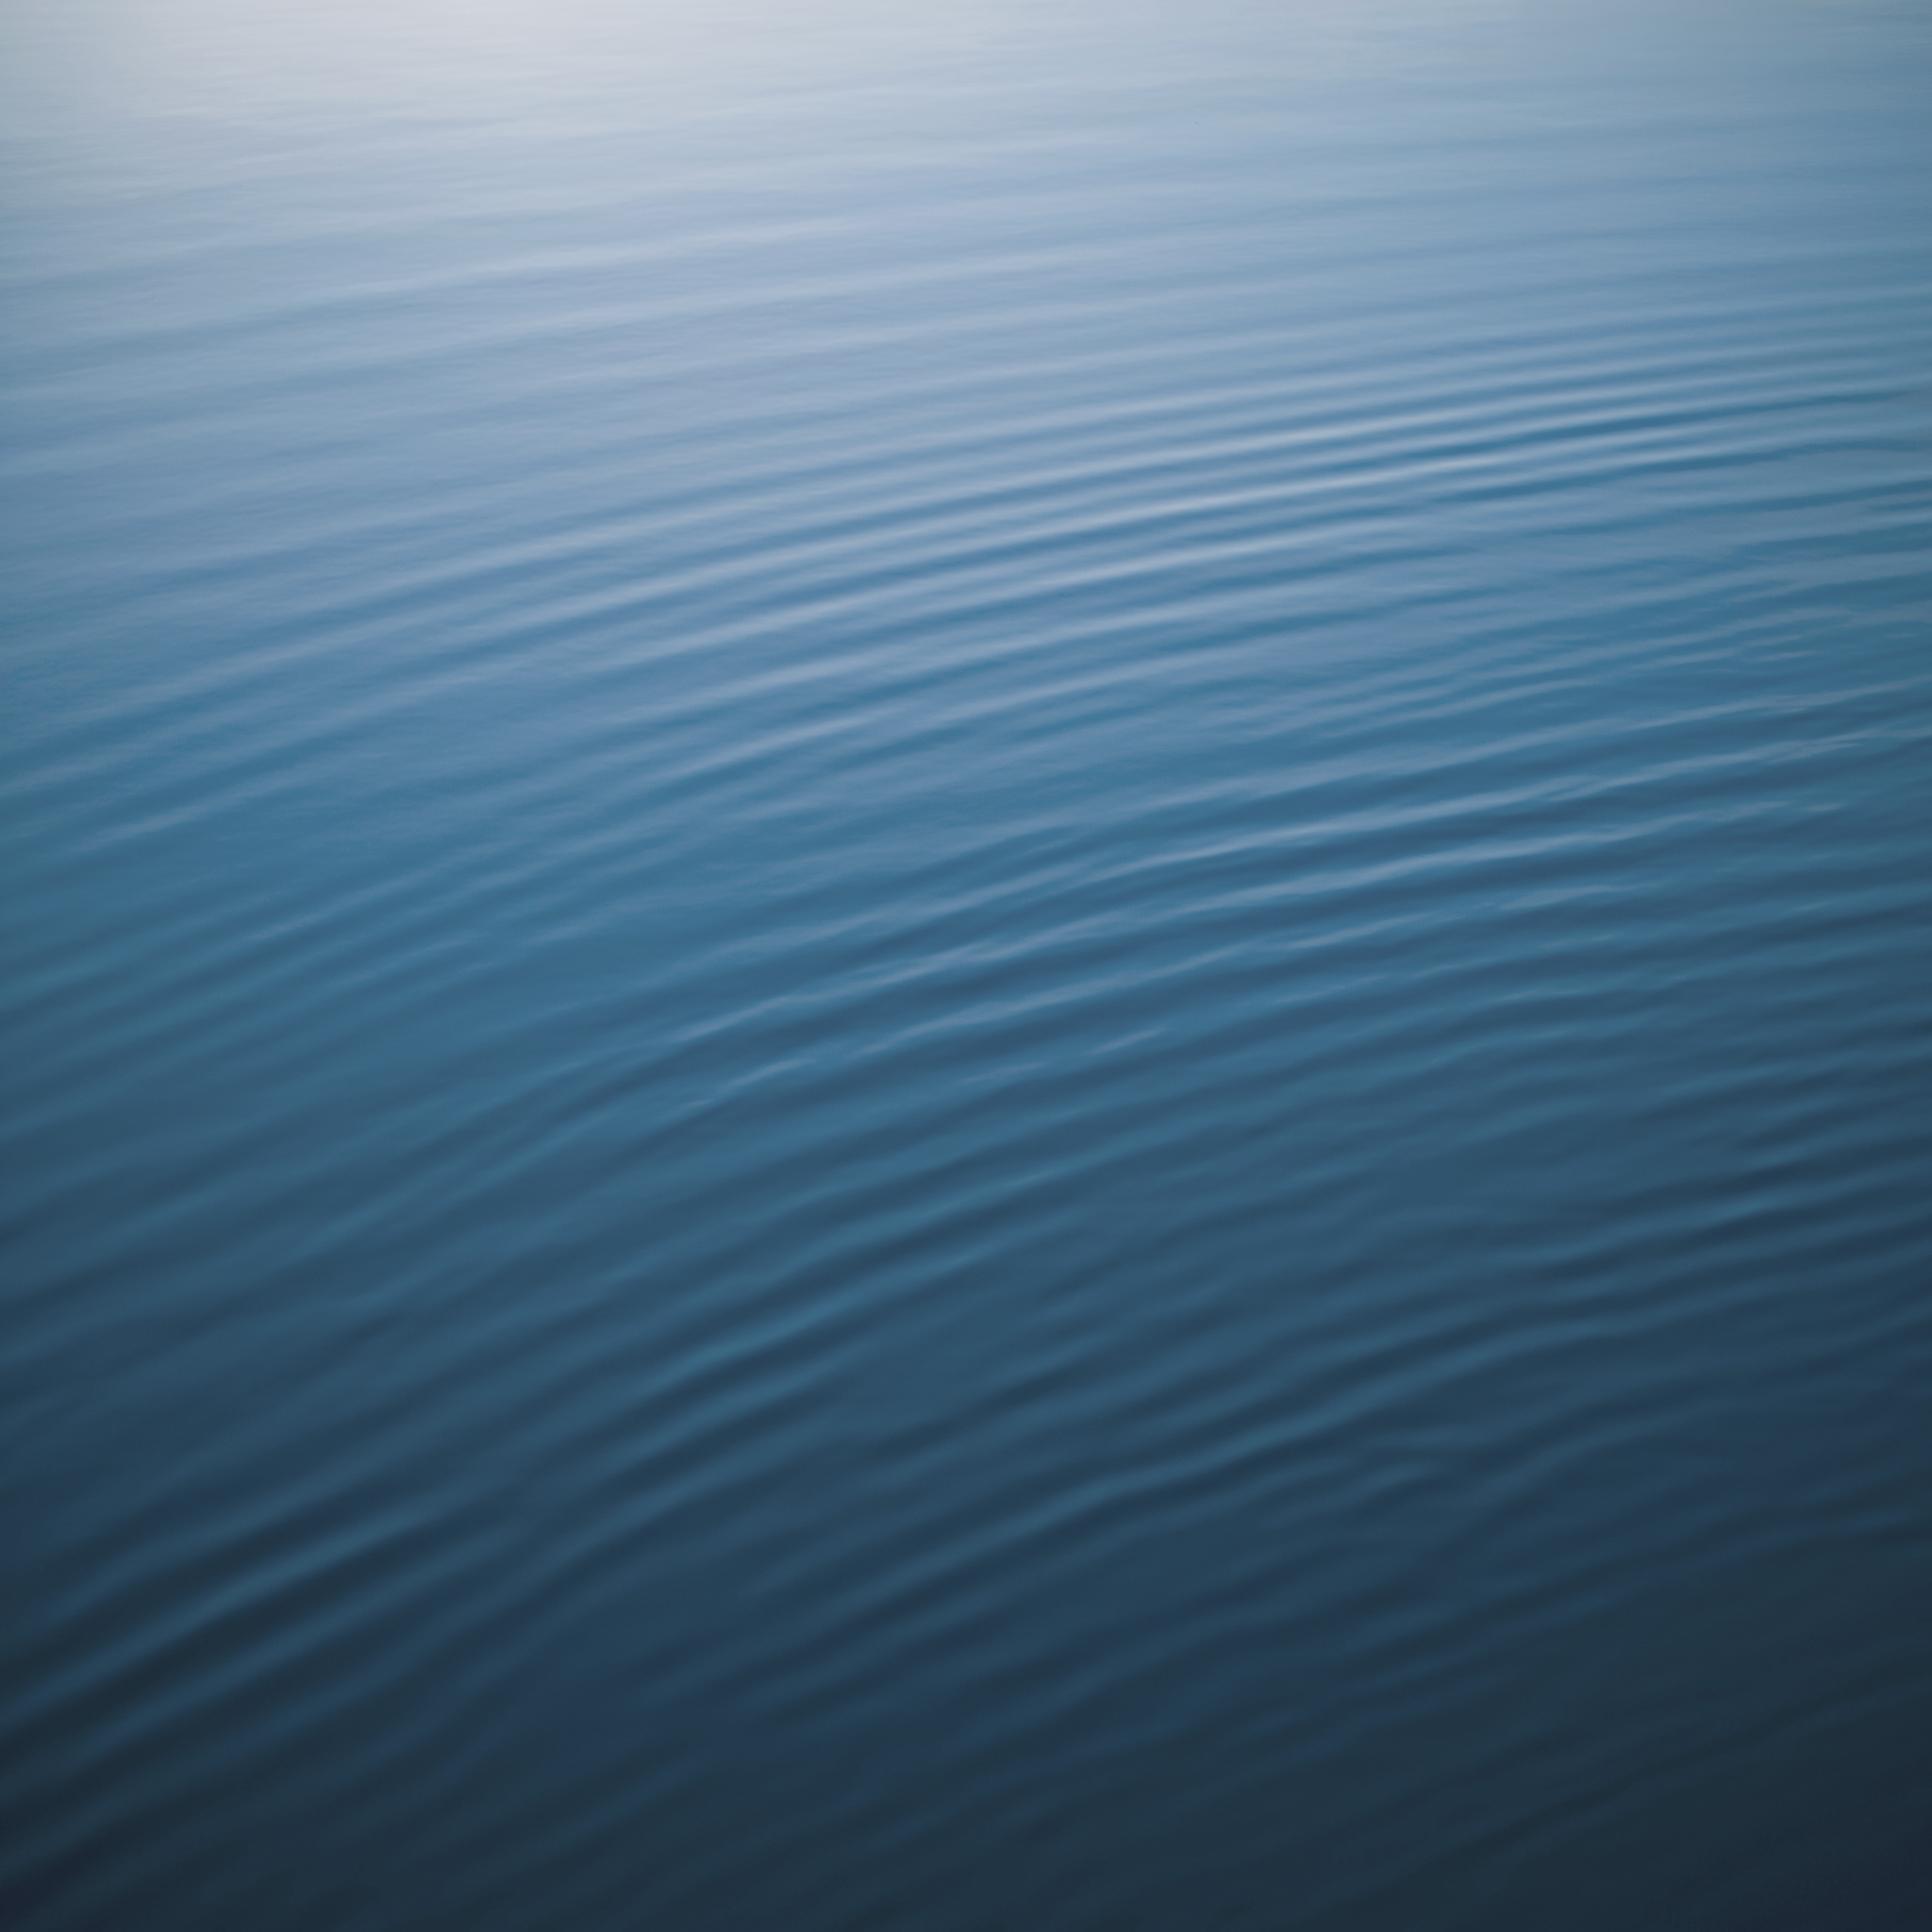 iOS 6 Get the New iOS 6 Default Wallpaper Now Rippled Water By 2048x2048